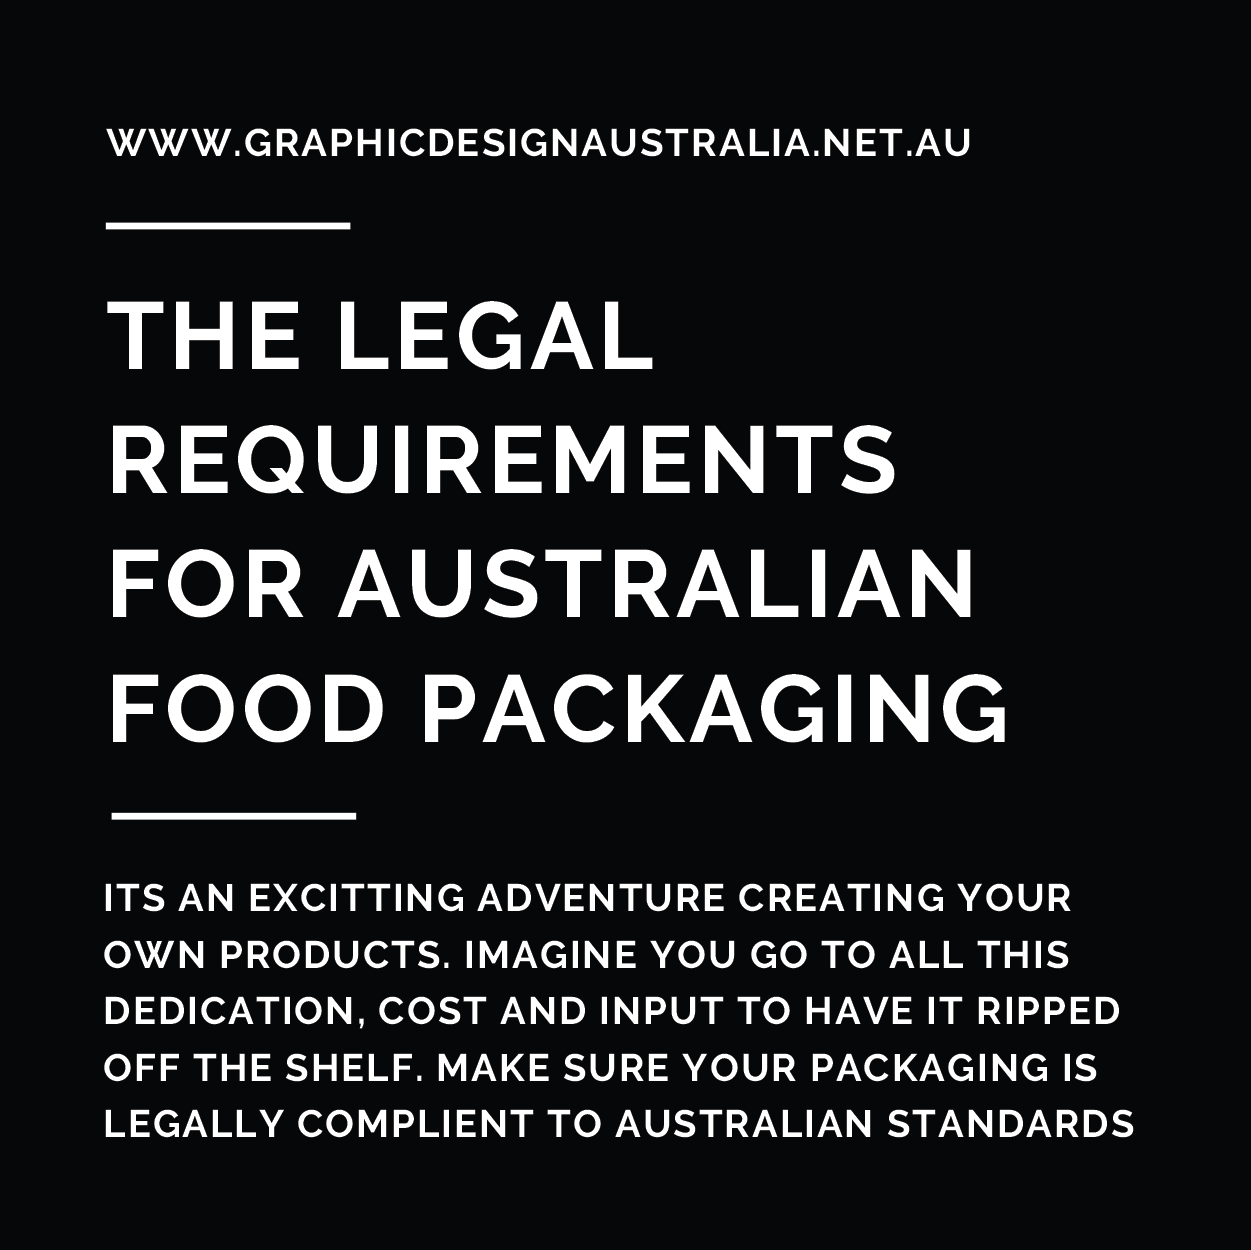 Legal Requirements for Australian Food Packaging